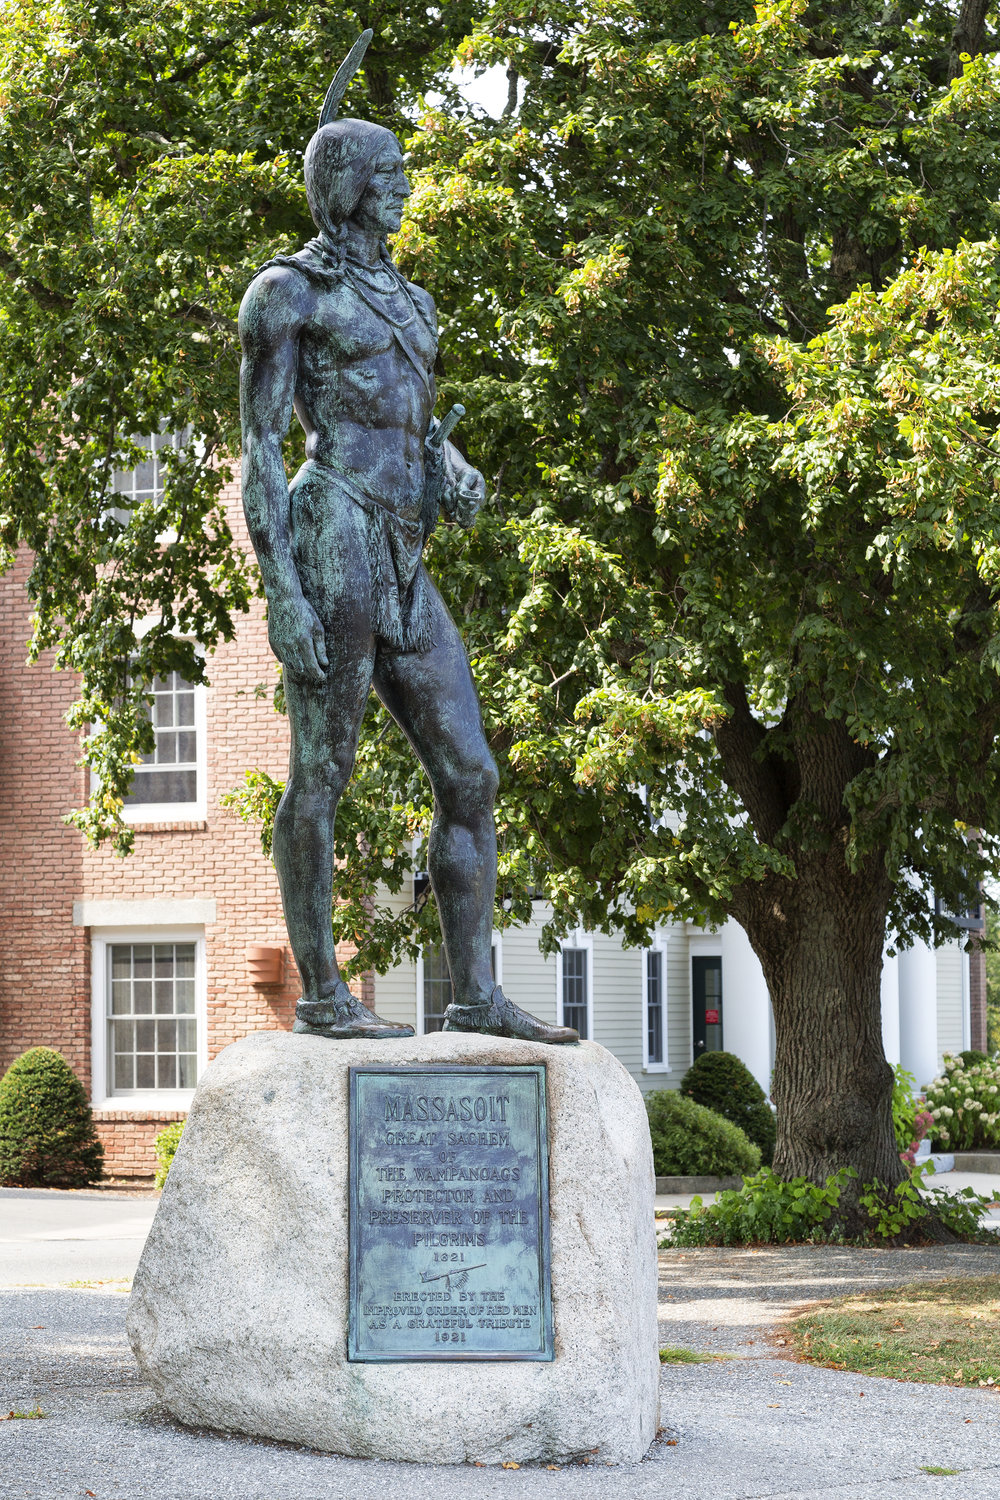 A statue of Chief Massasoit is located in Plymouth, MA.